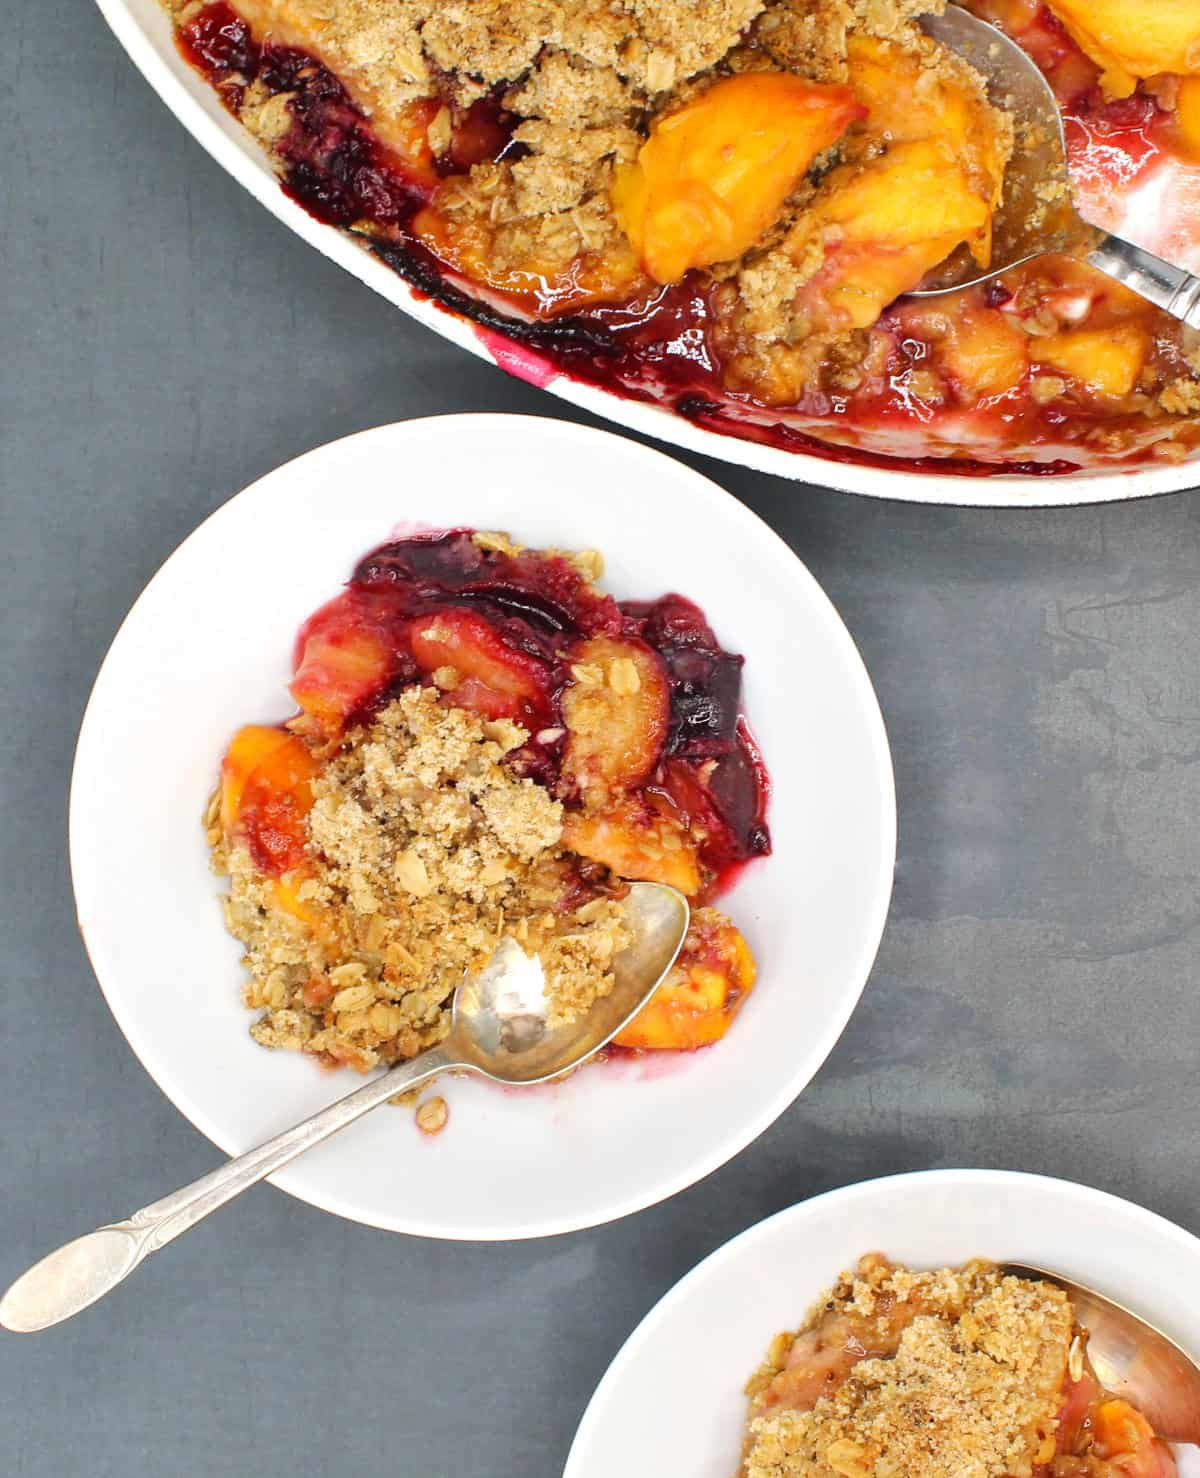 Photo of abowl of delicious vegan peach and plum crisp with a spoon, with the baking dish in the background.